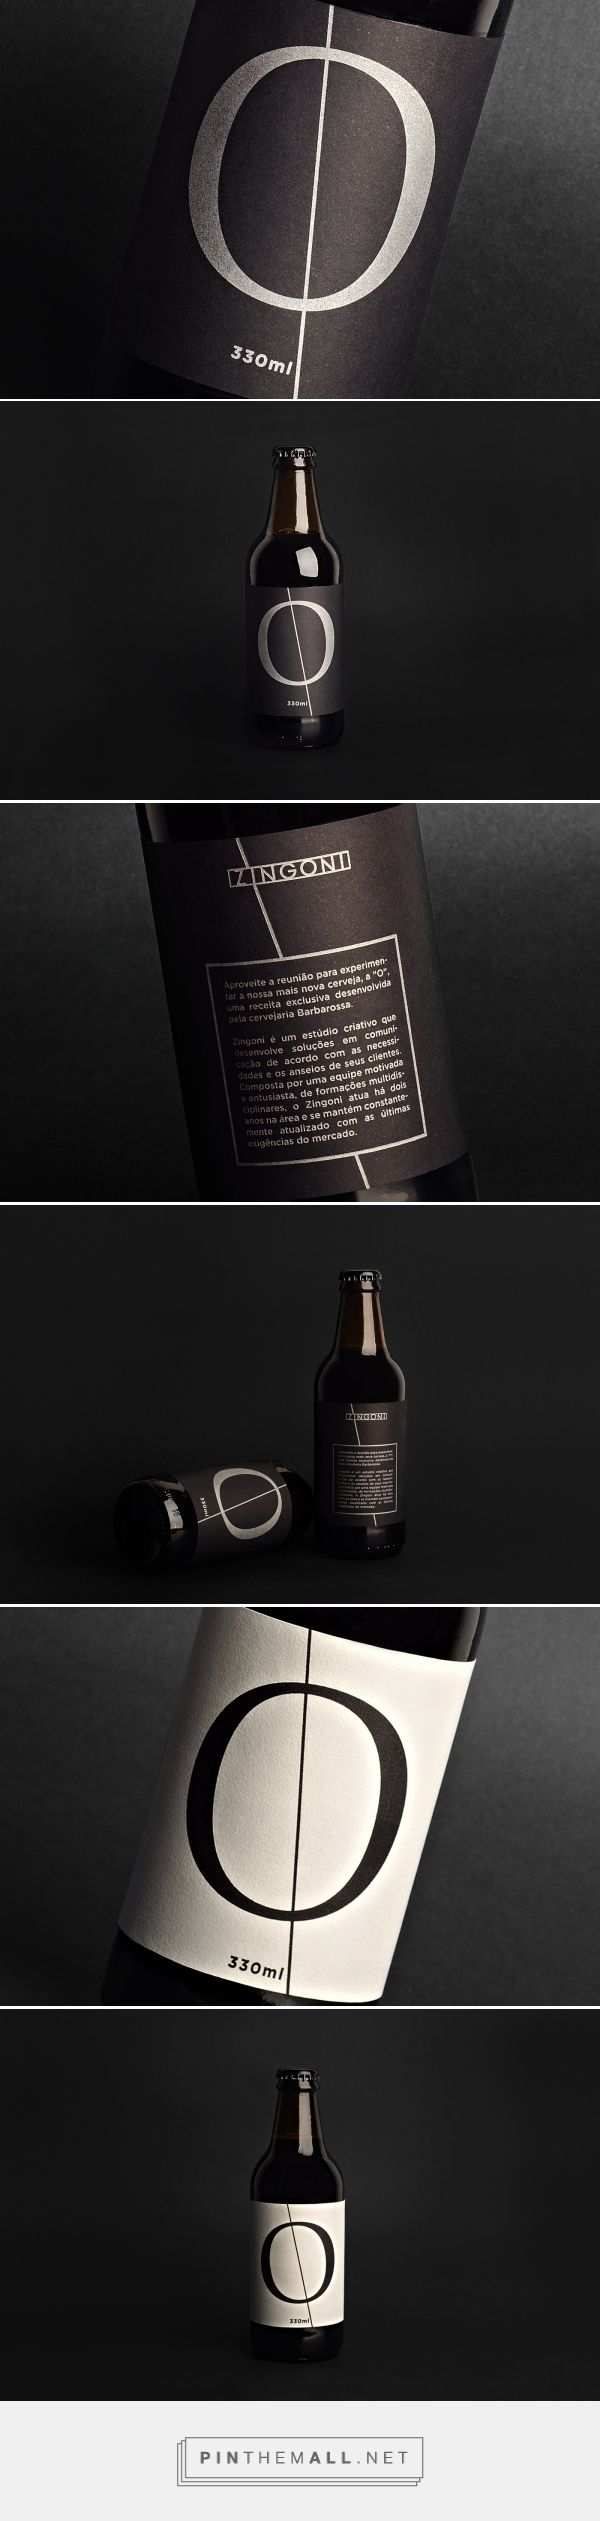 O - In honor of Typography - Packaging of the World - Creative Package Design Gallery -http://www.packagingoftheworld.com/2017/02/o-in-honor-of-typography.html